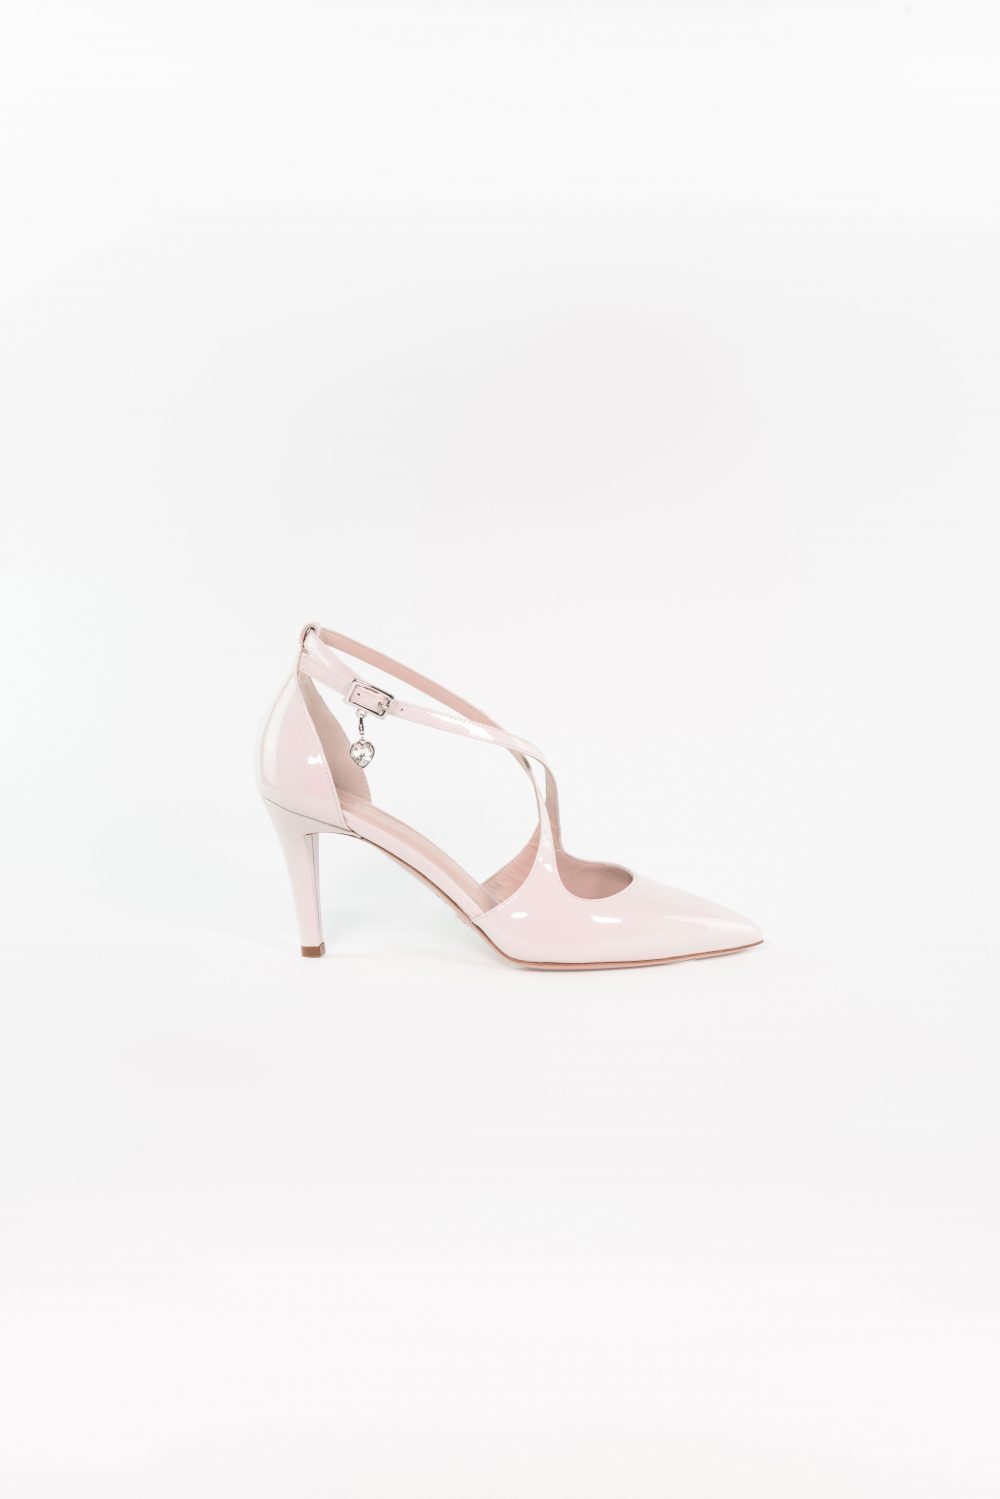 Abendschuh Sarah in offwhite